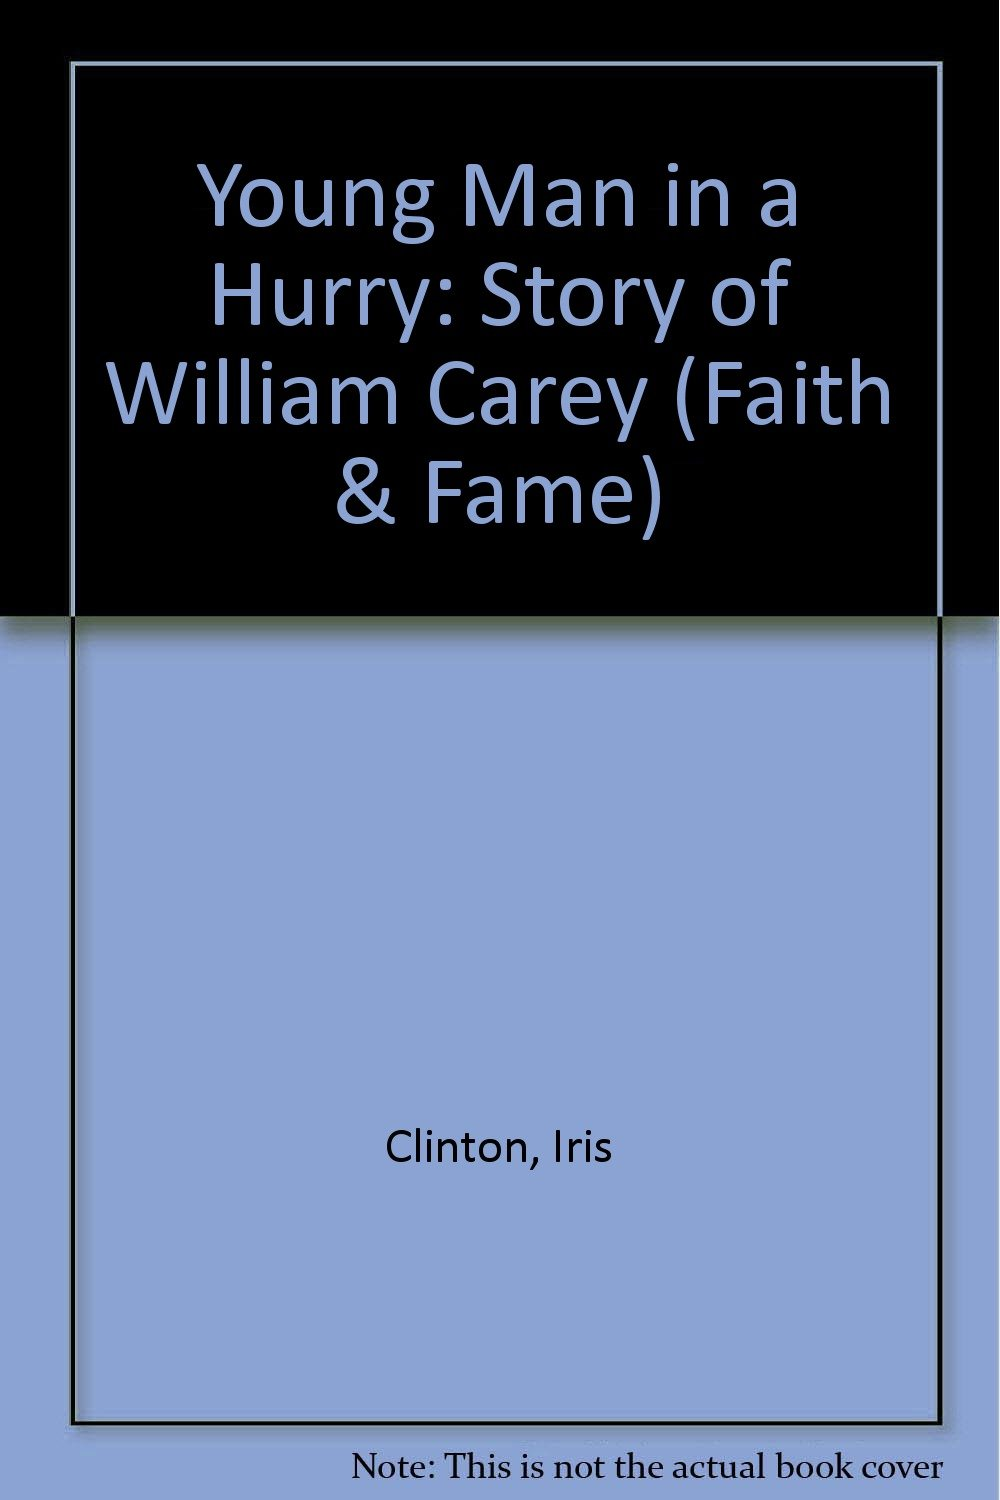 Young Man in a Hurry: Story of William Carey (Faith & Fame): Iris Clinton:  9780718825348: Amazon.com: Books